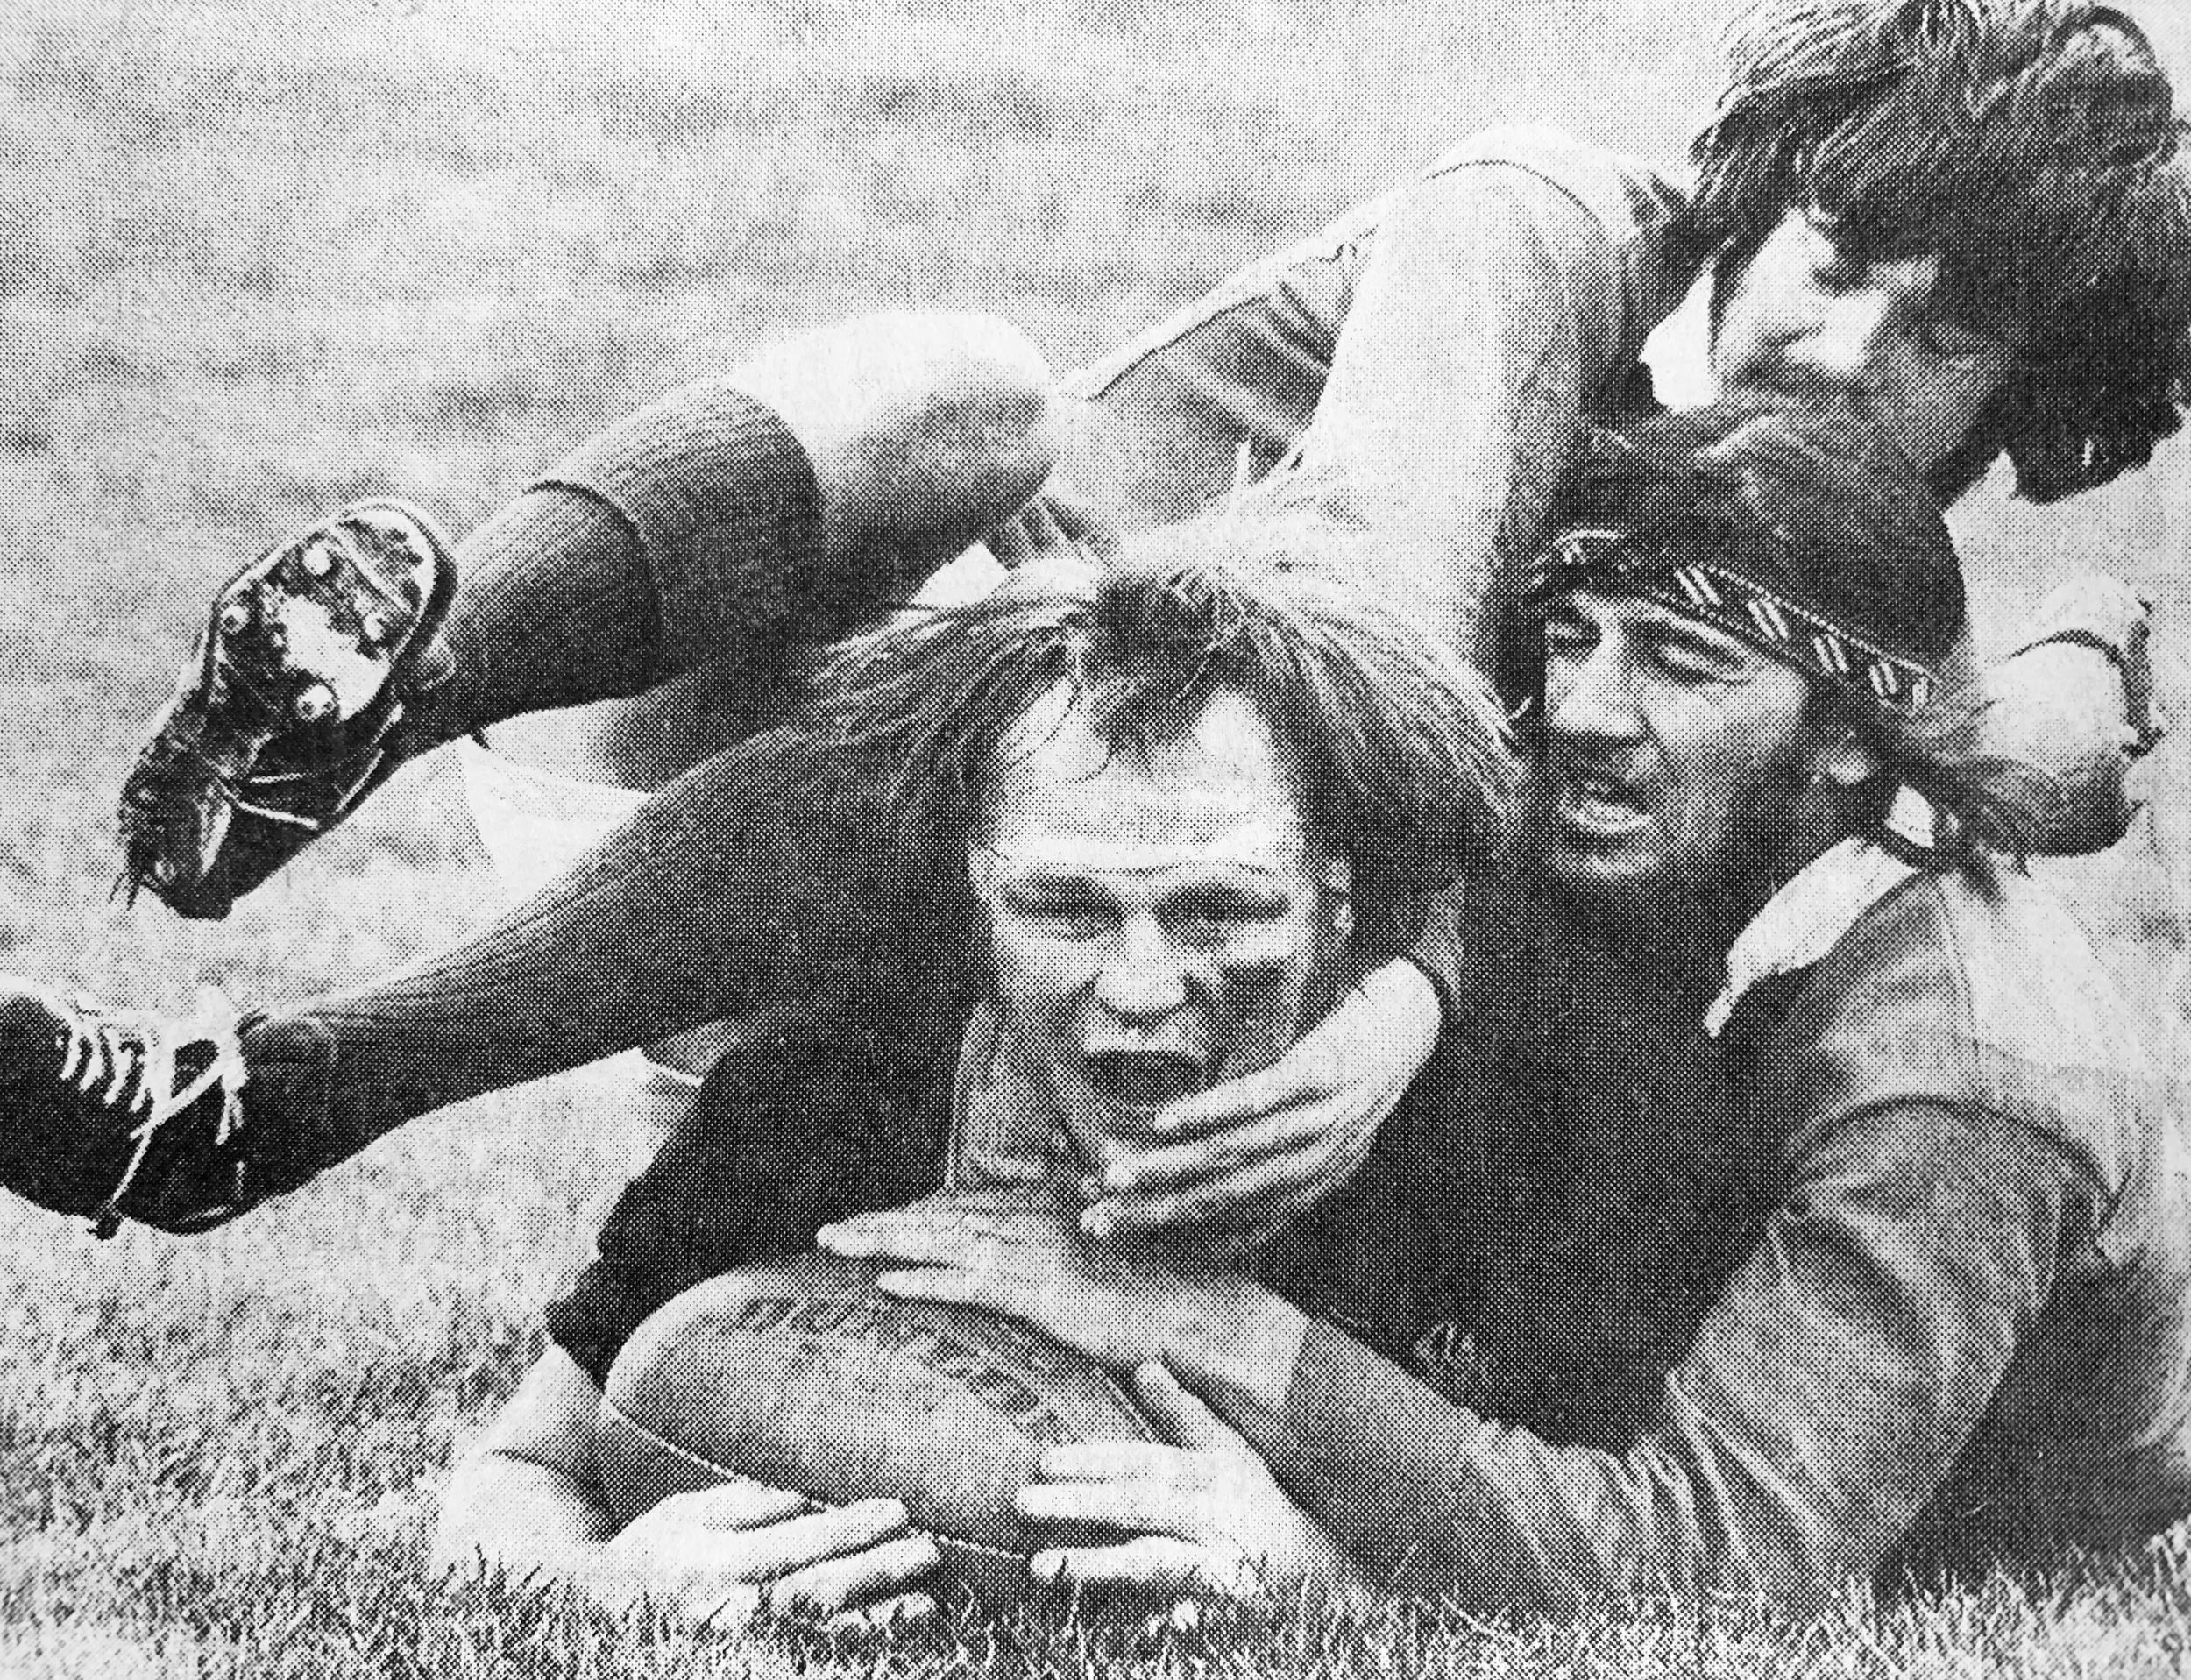 Alice's family ties even extend to her dad (far right) playing for poverty bay from 1976 to 79, including in first 5/8 position against the Lions led by Ian Kirkpatrick in 1977.